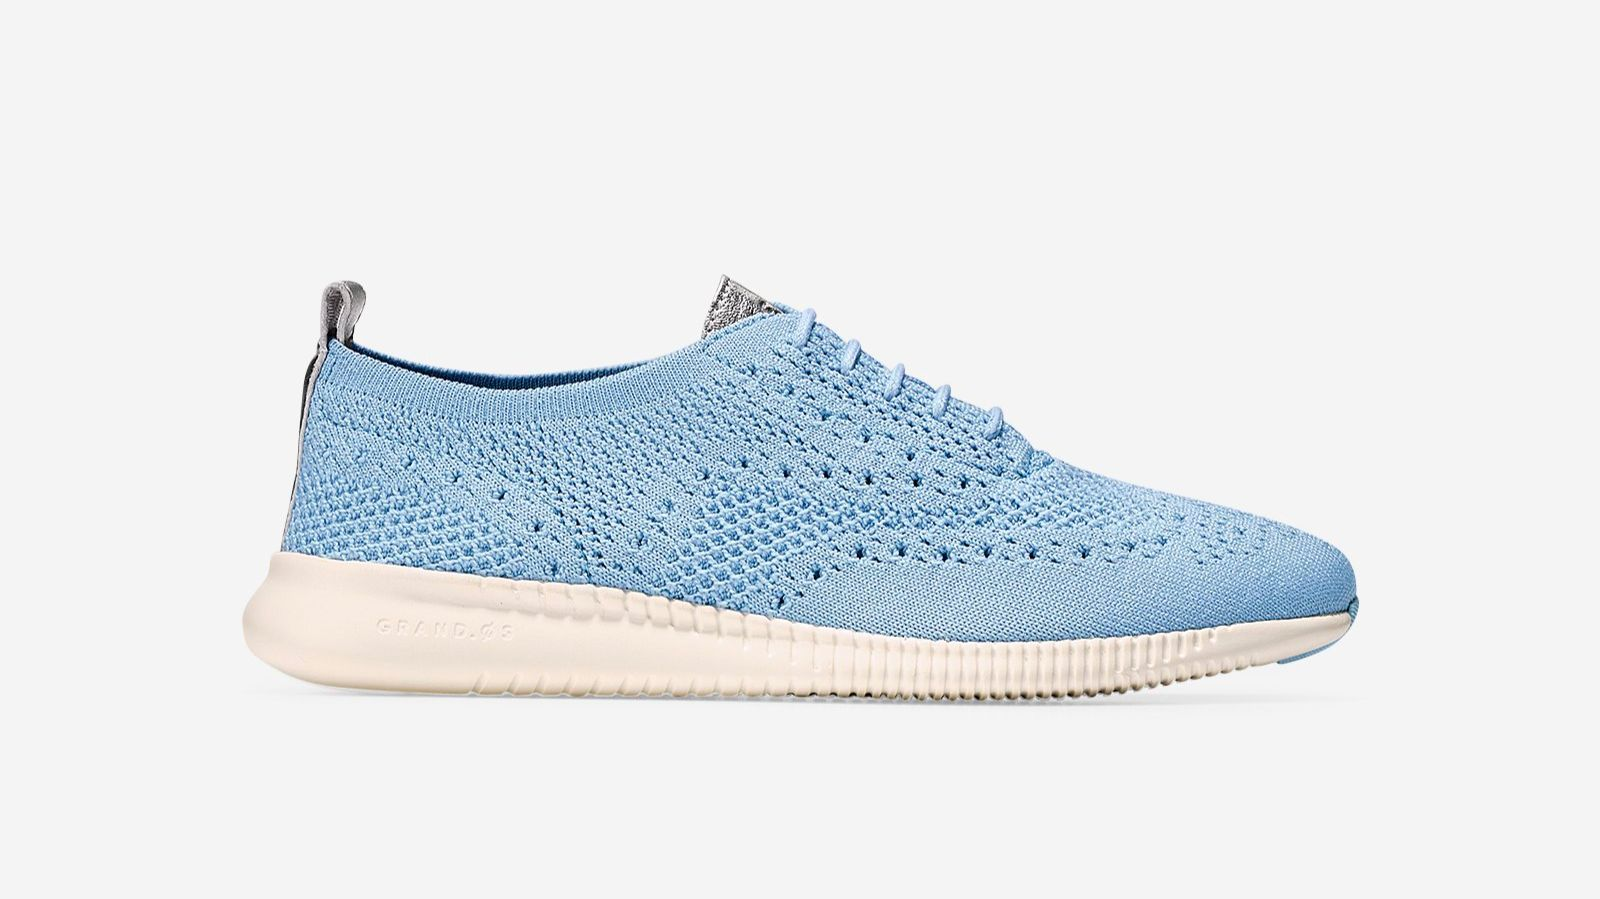 The new 2.Zerogrand from Cole Haan is a lightweight, multi-purpose shoe.